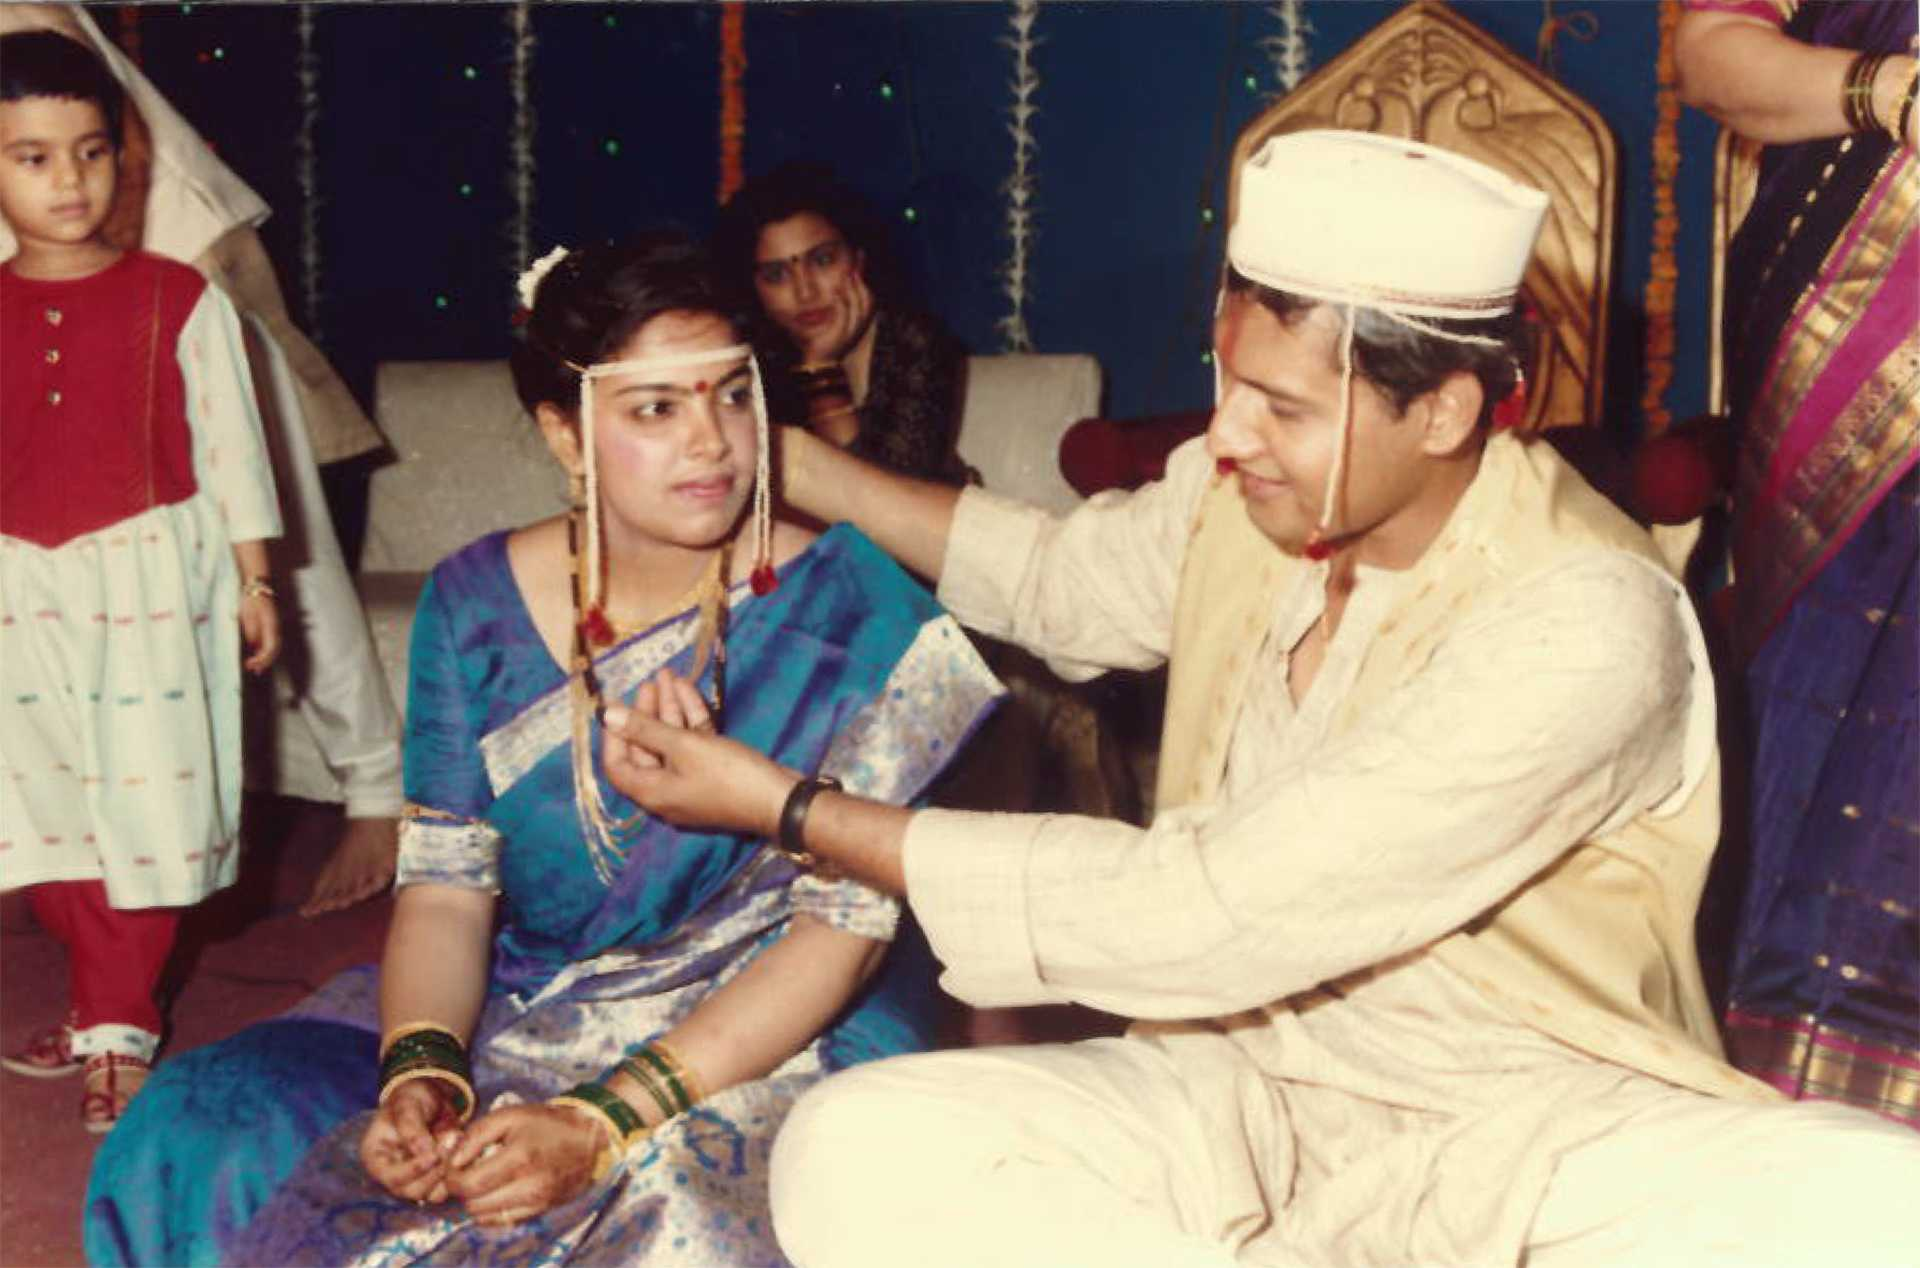 Aadit Tambe's parents Anagha and Makarand are seen on their wedding day in 1994. (Contributed)